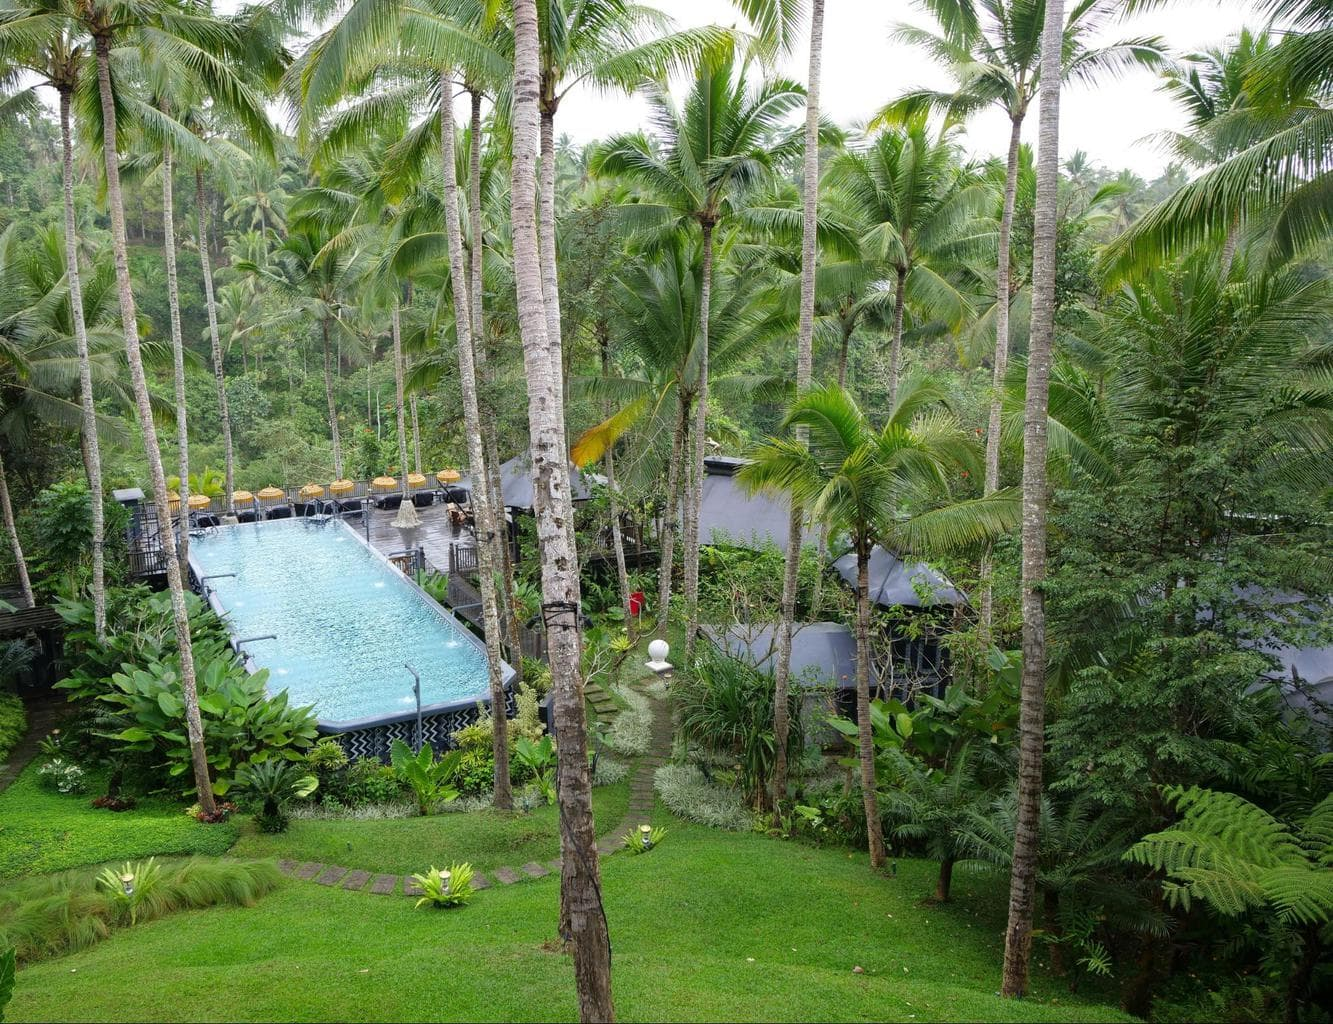 The cistern pool and resort grounds